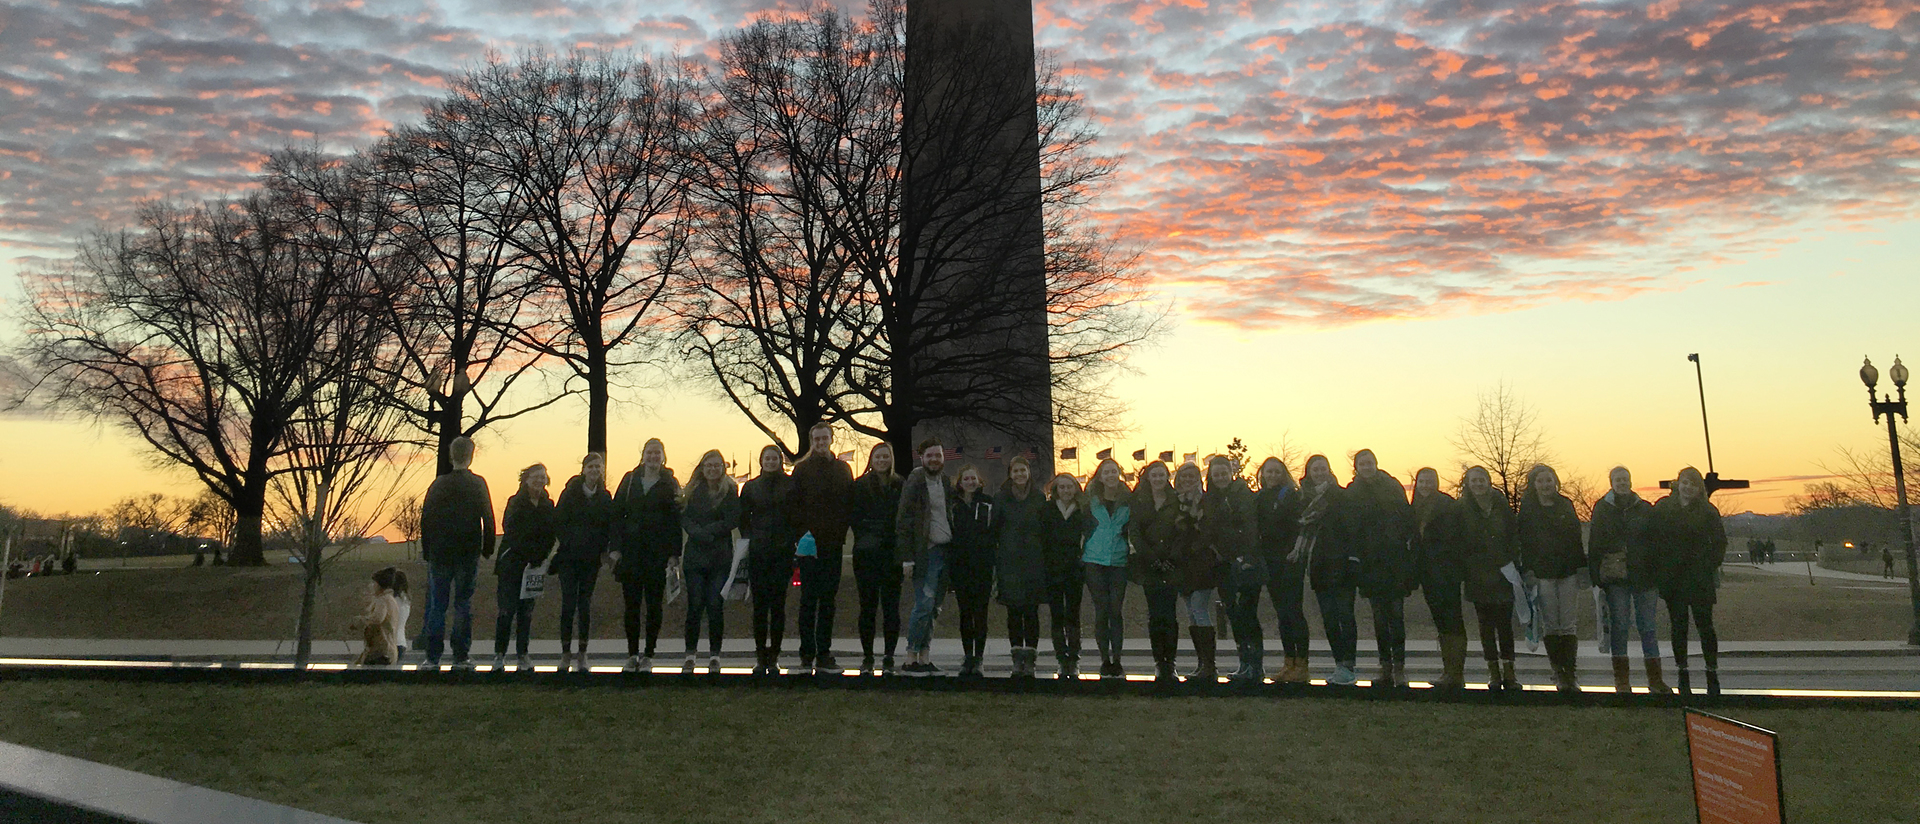 Blugolds on Winterim immersion experience in Washington, D.C.